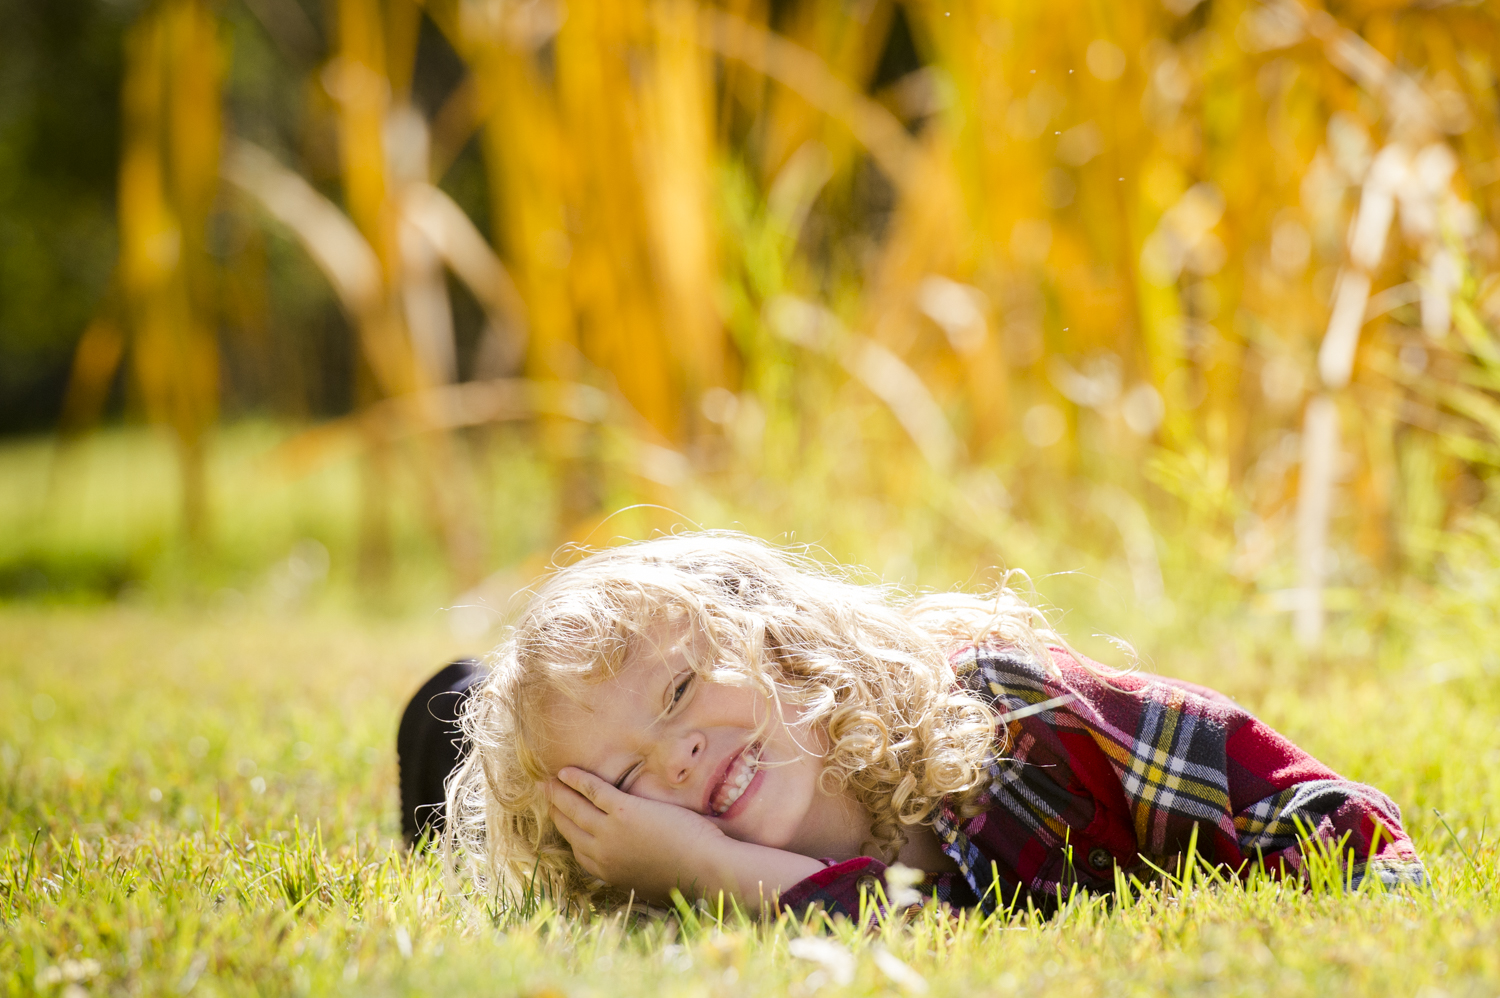 fall_lifestyle_family_leaves_candid_playing-020.jpg